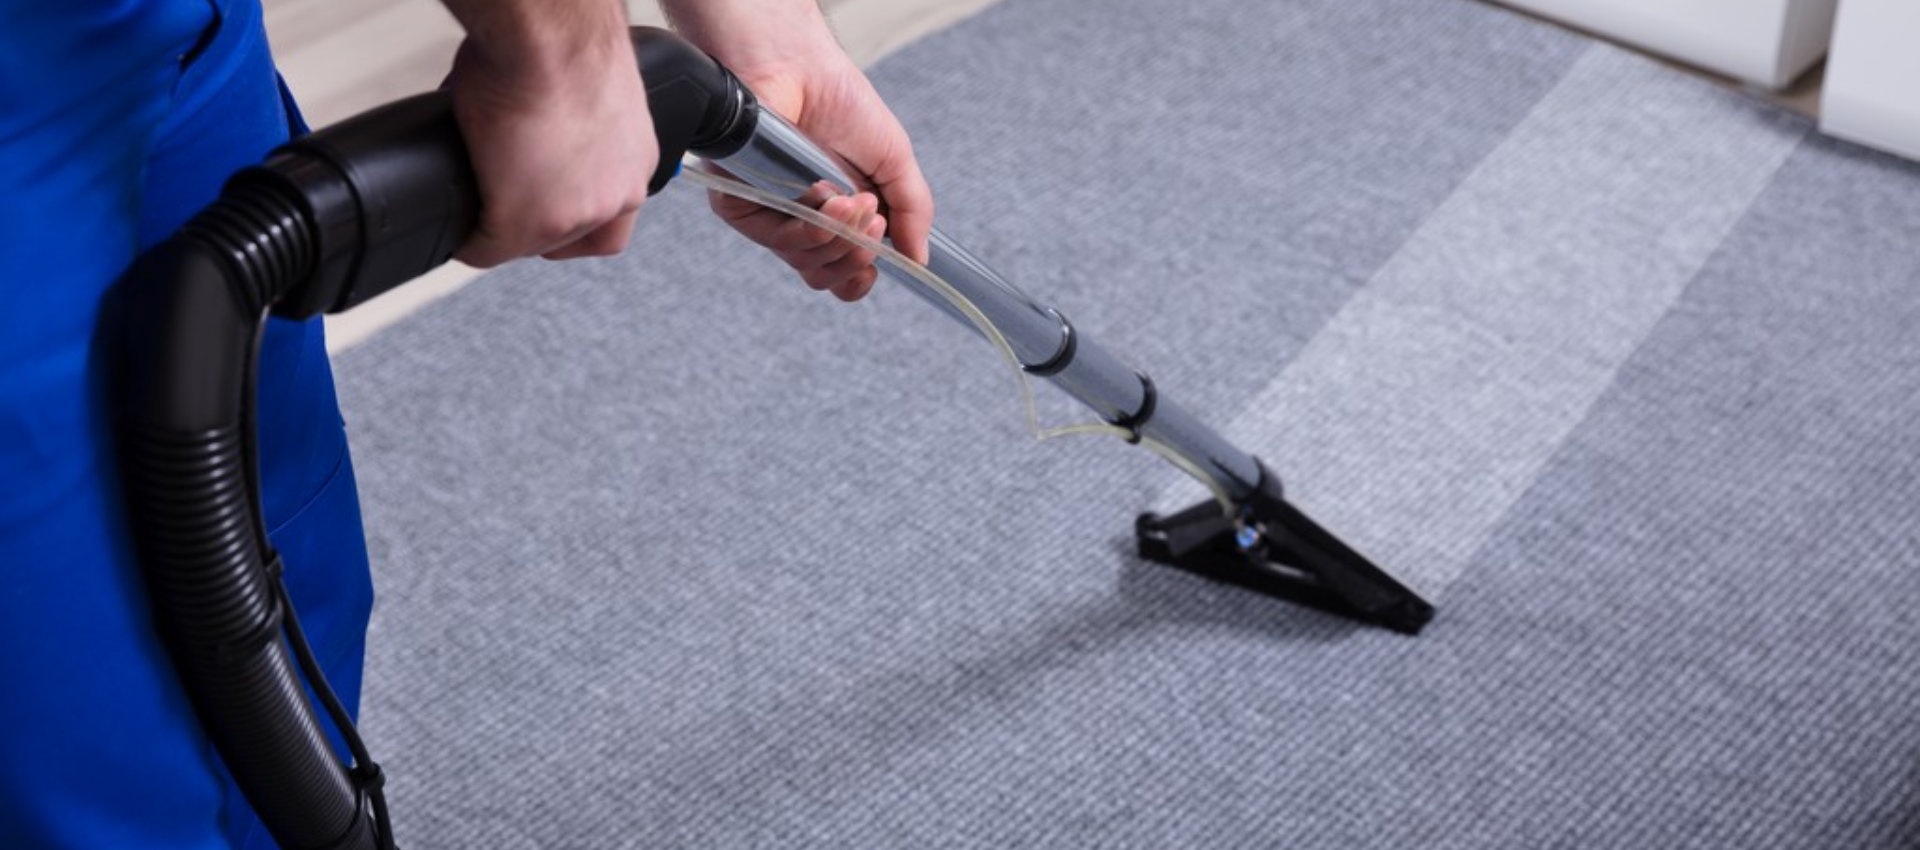 housekkeeping cleaning a carpet